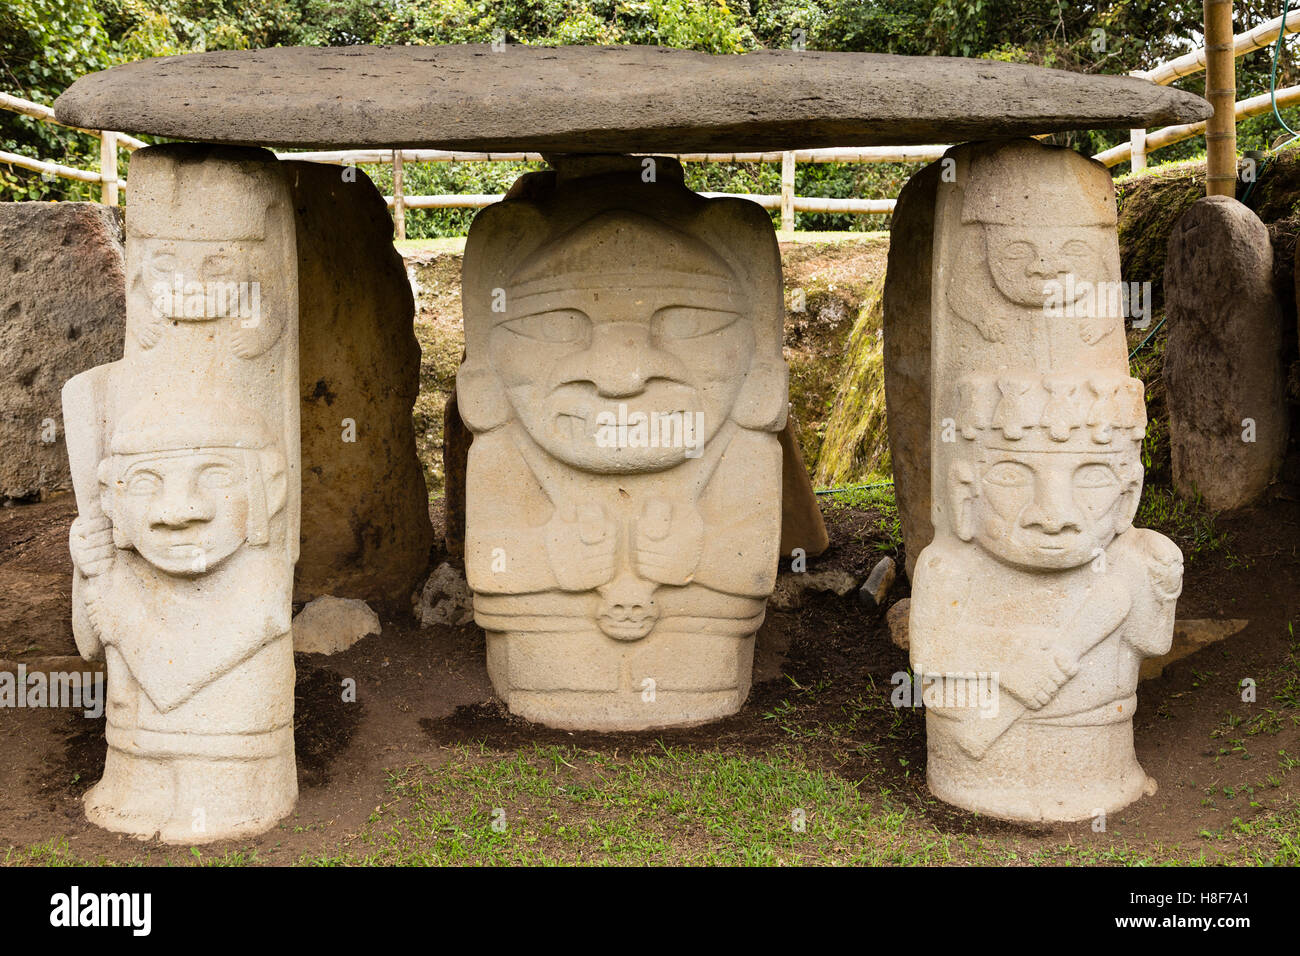 Pre-Colombian Funeral Sculptures of San Agustin, megaliths, Parque Archeologico, San Agustin, Huila, Colombia - Stock Image